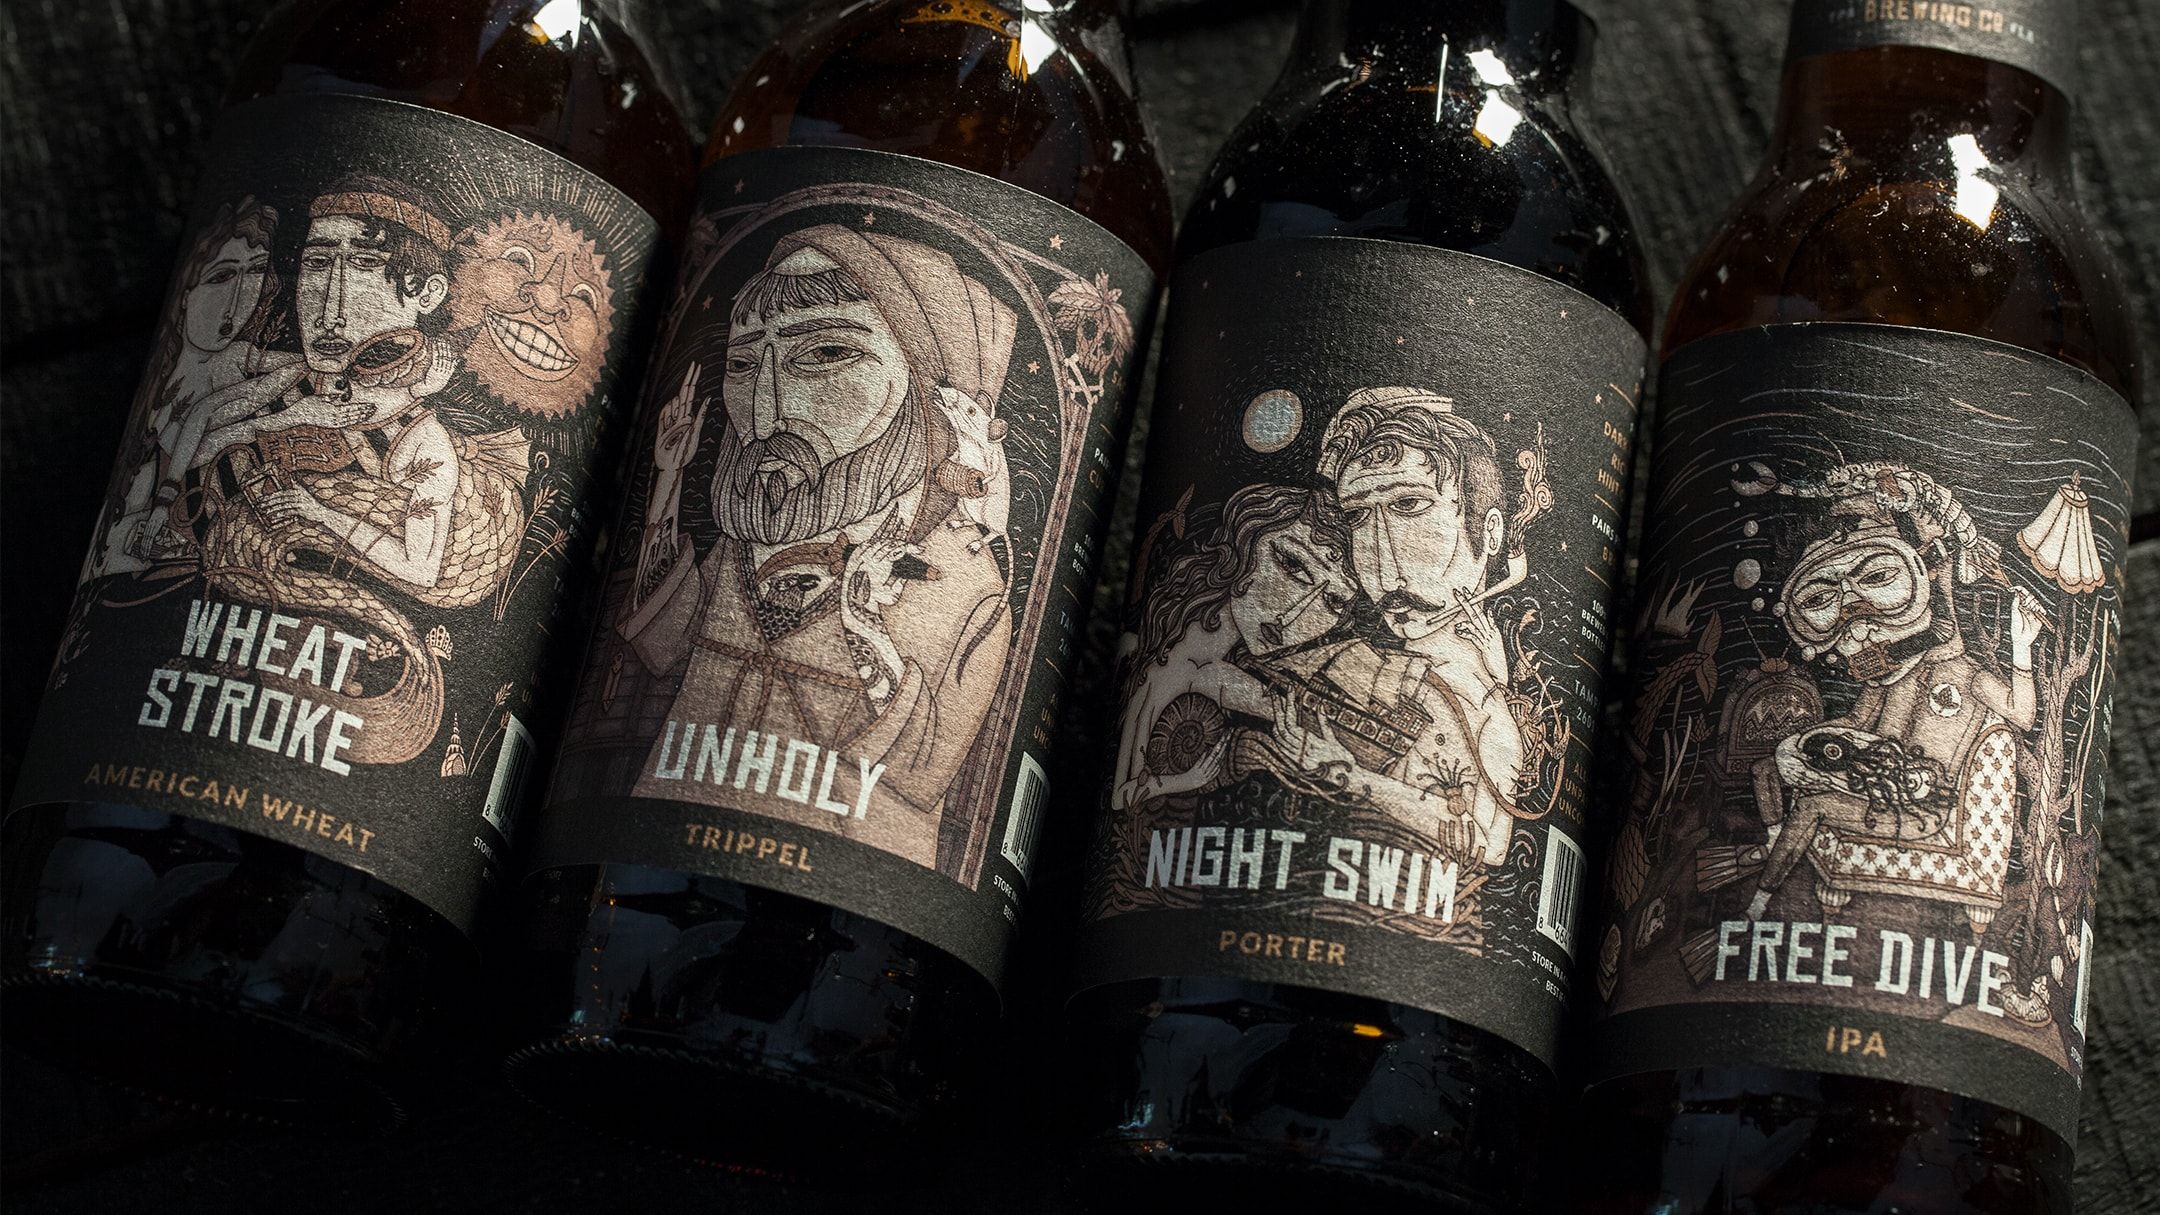 Coppertail Beer Bottle designs seen on their core 4.